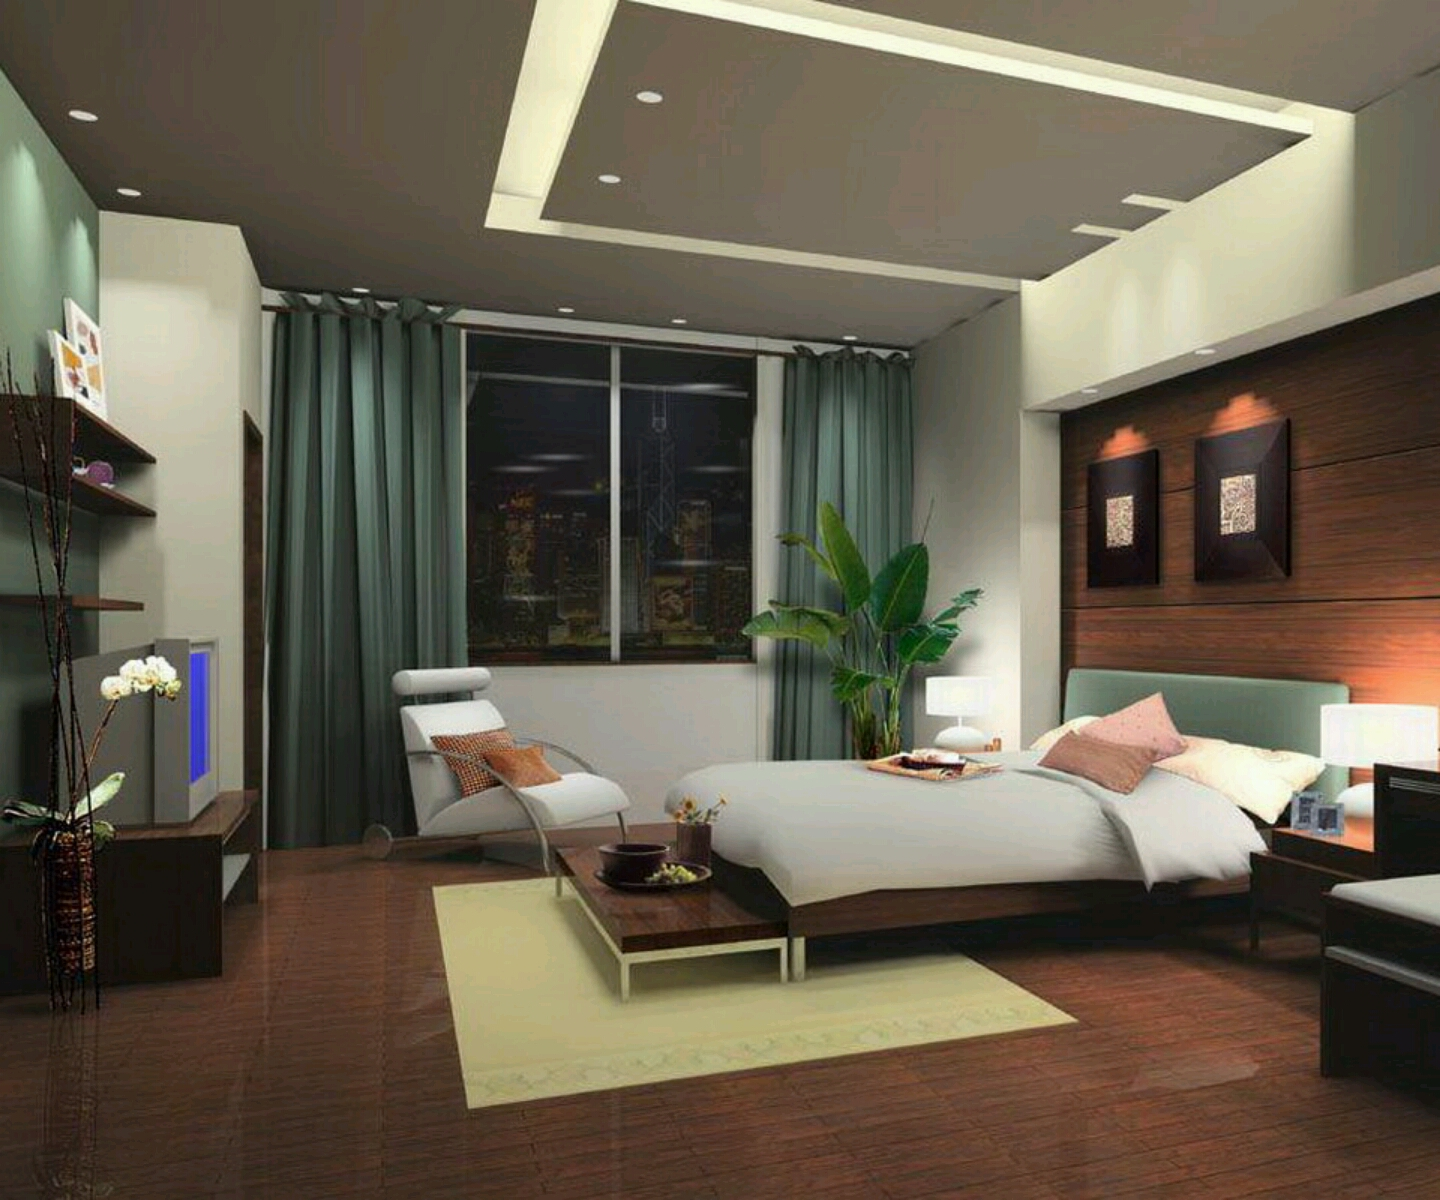 New home designs latest modern bedrooms designs best ideas for Bedroom designs photos